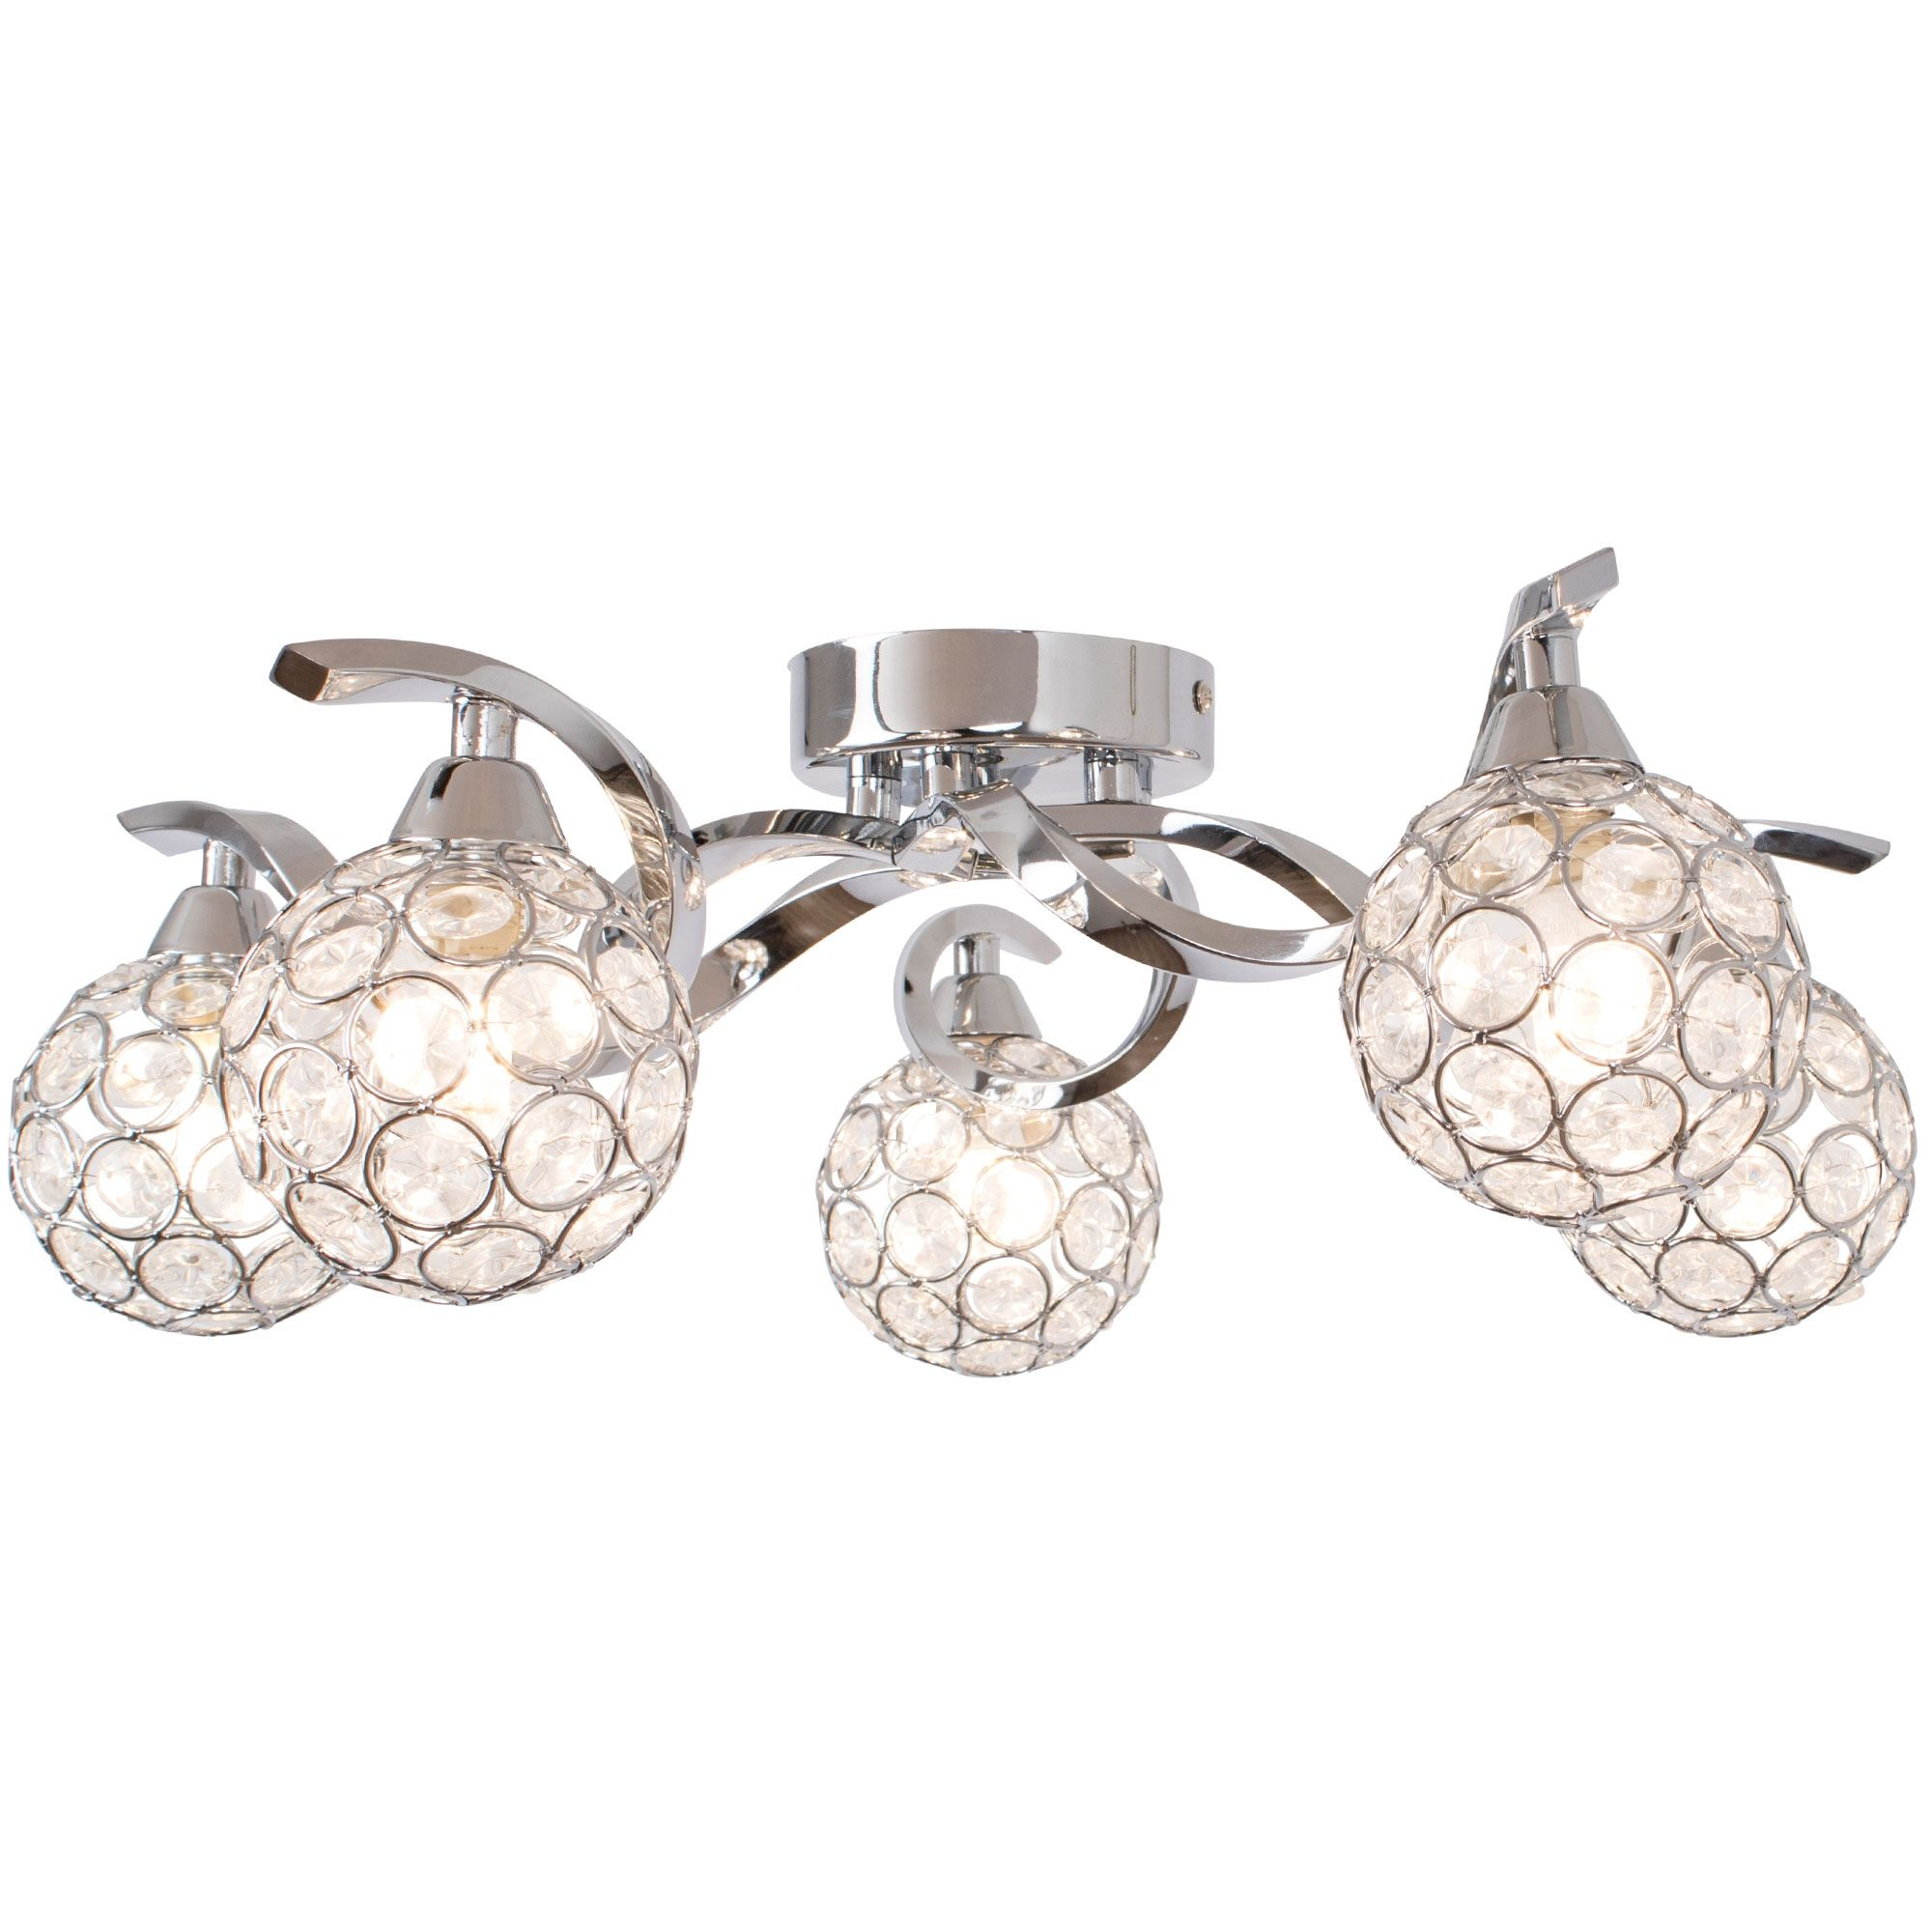 Zana 5 Light Semi Flush Ceiling Light